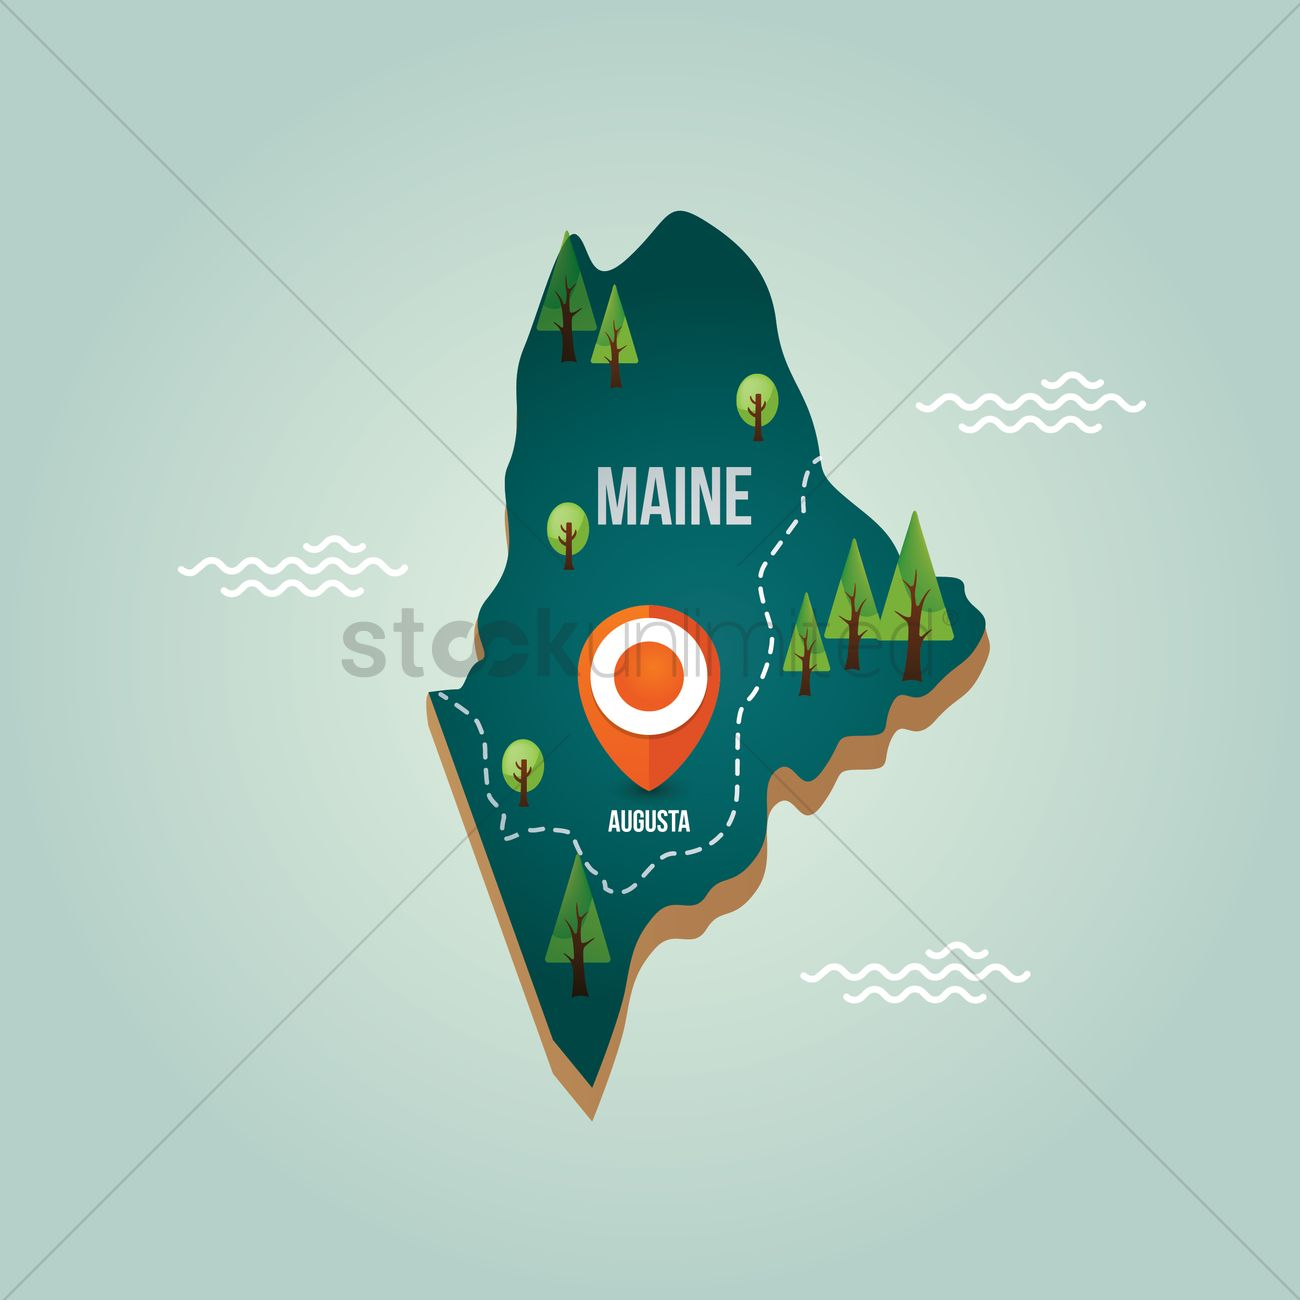 capital of maine map Maine Map With Capital City Vector Image 1536693 Stockunlimited capital of maine map